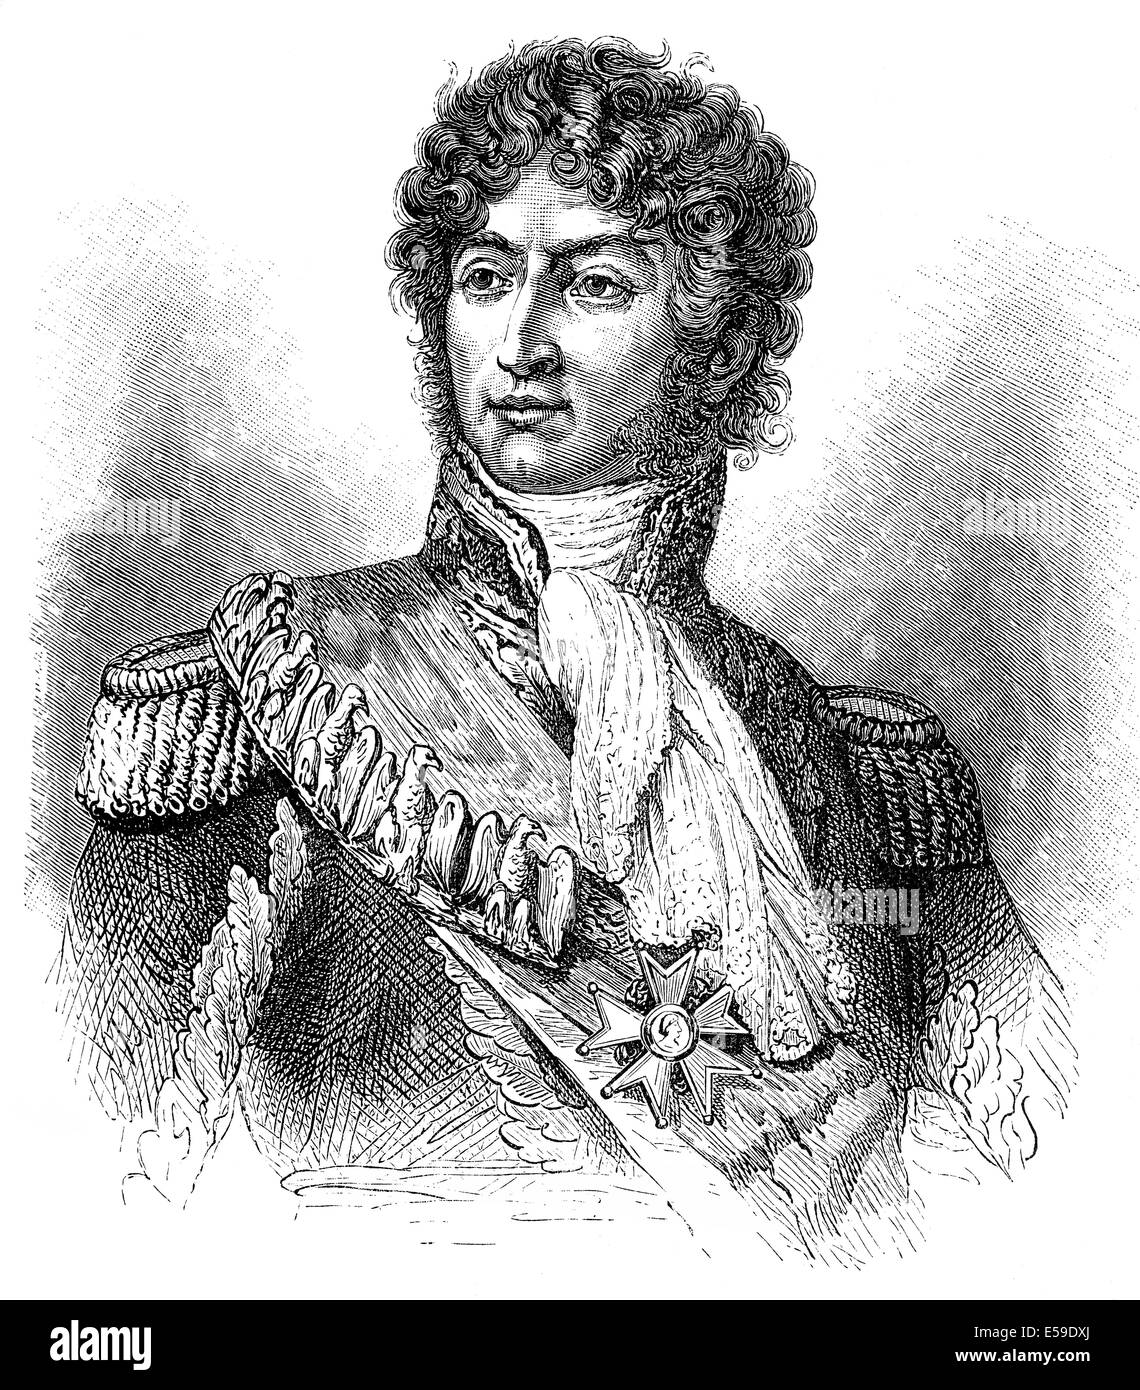 Joachim-Napoléon Murat, 1767 - 1815, Marshal of France, King of Naples, Stock Photo